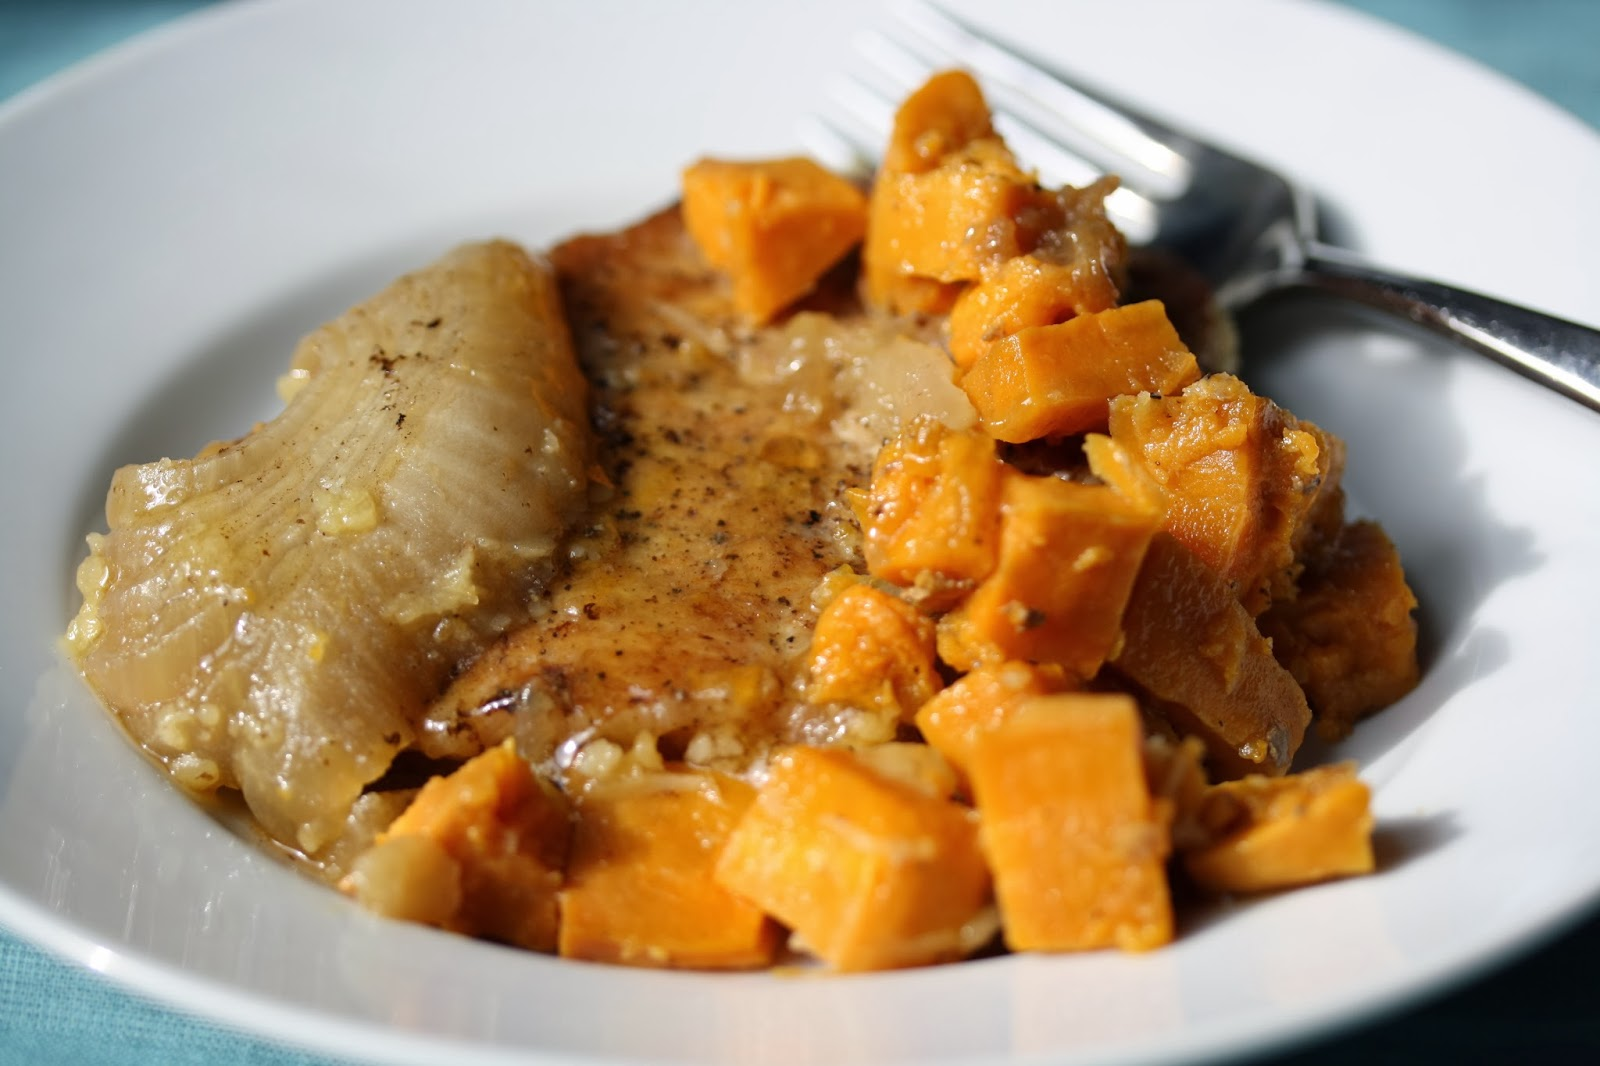 ... Happy Home: Slow Cooker Pork Chops with Apples and Sweet Potatoes